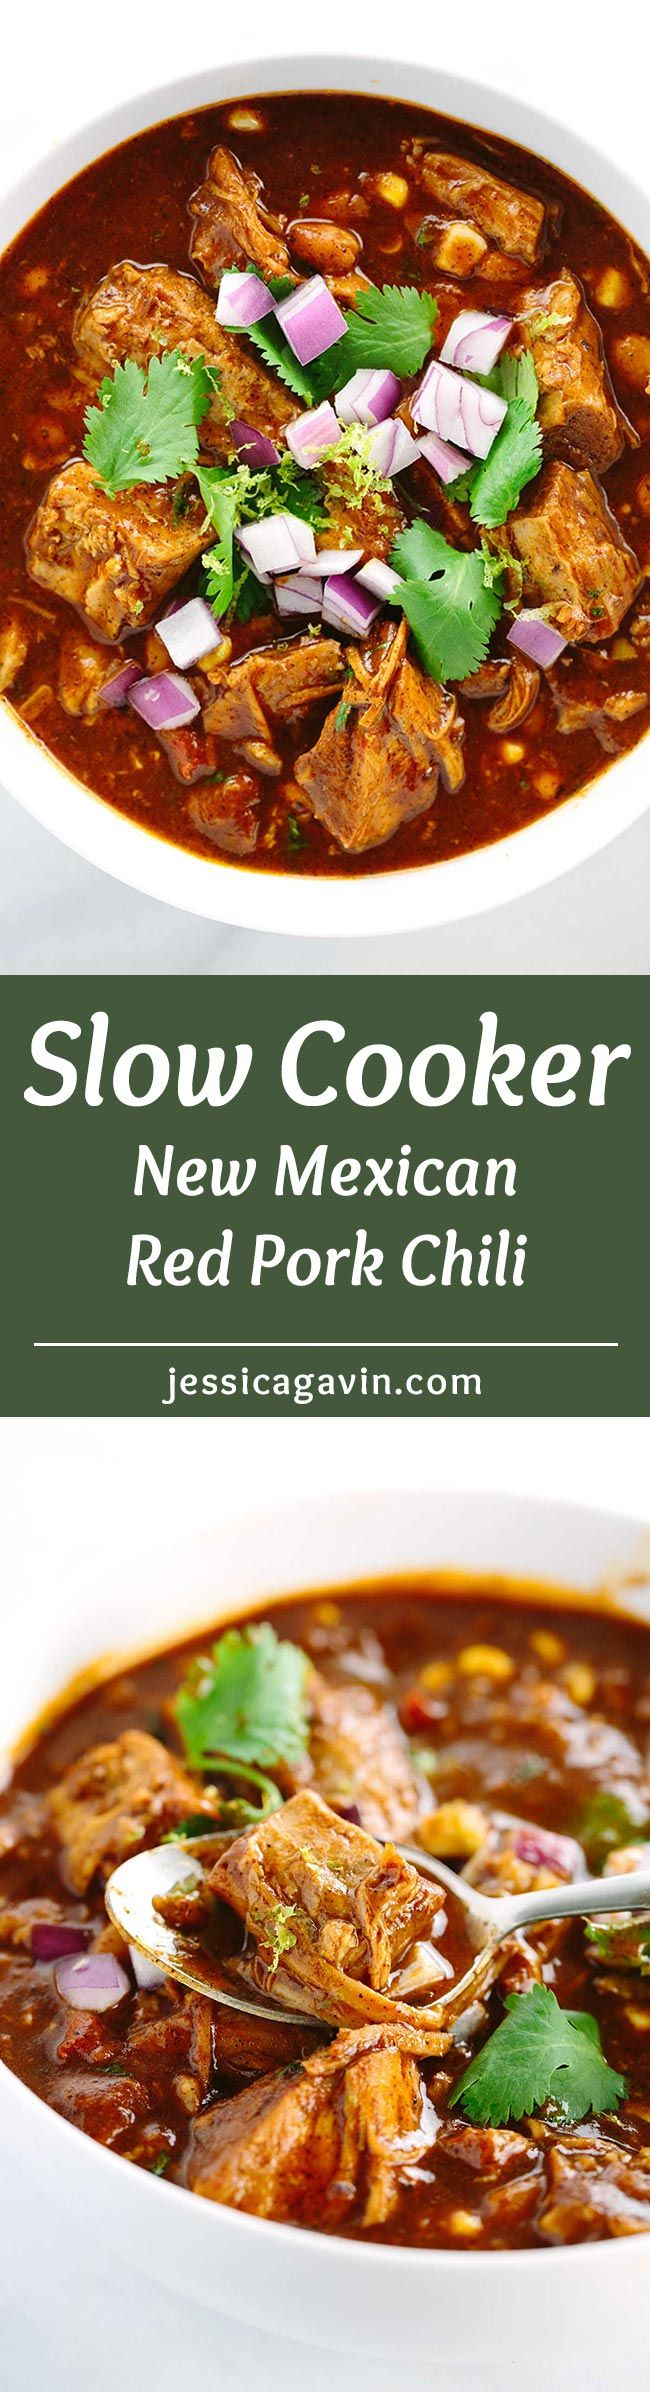 Slow Cooker New Mexican Red Pork Chili - This hearty recipe is packed with rich spices, extremely tender pork, corn, and beans. A simple and easy to prepare meal that's great for a crowd! via @foodiegavin